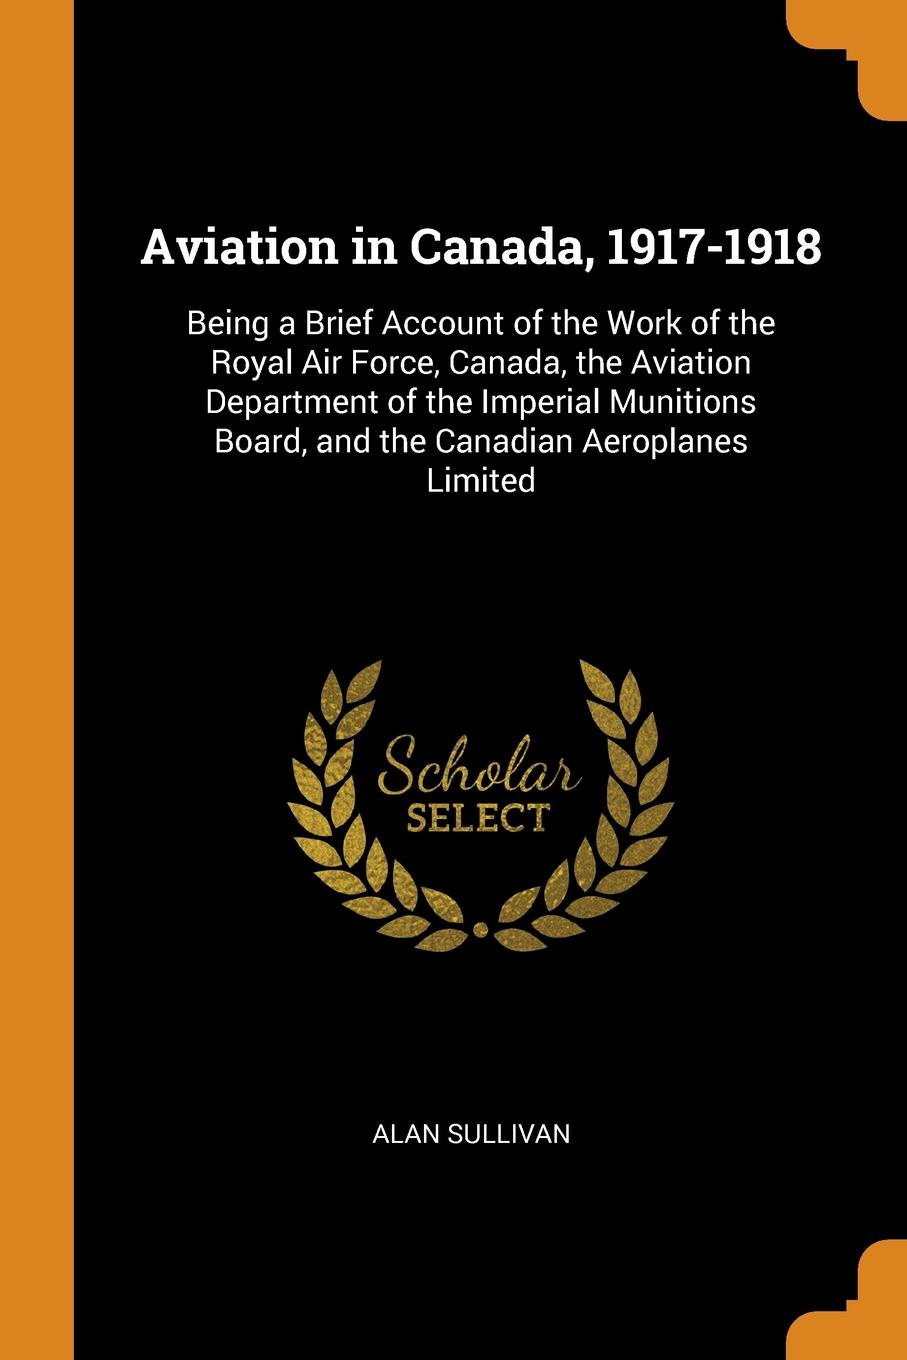 Alan Sullivan Aviation in Canada, 1917-1918. Being a Brief Account of the Work of the Royal Air Force, Canada, the Aviation Department of the Imperial Munitions Board, and the Canadian Aeroplanes Limited